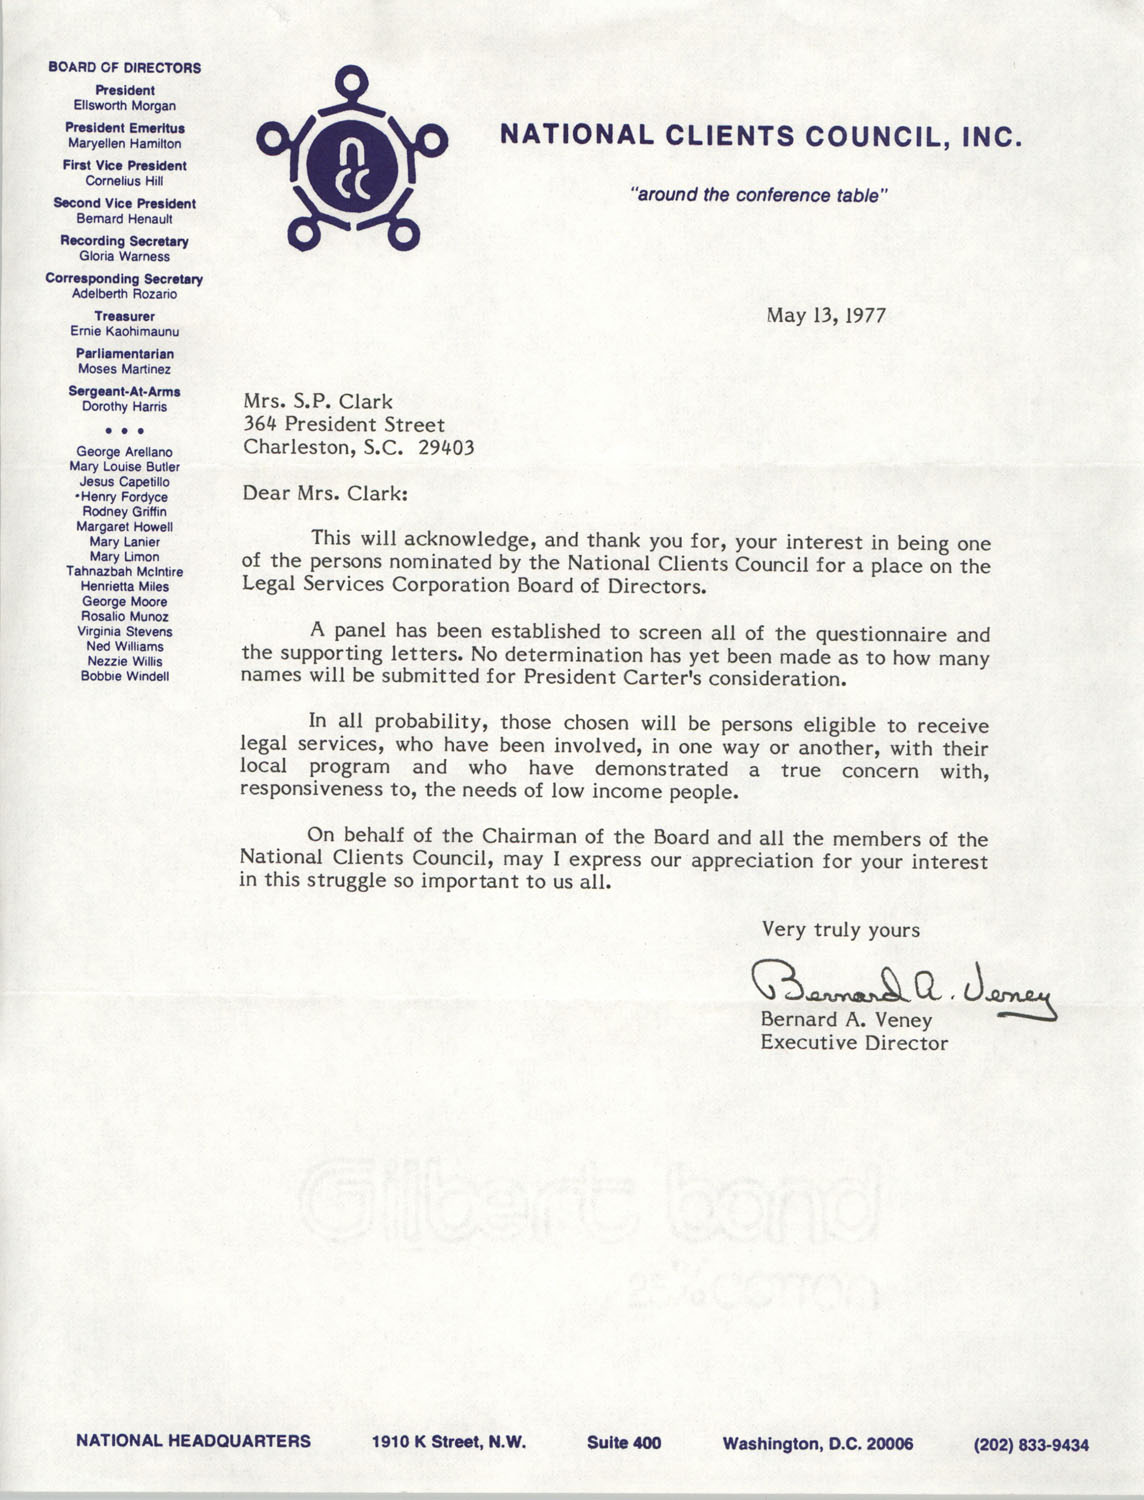 Letter from Bernard A. Veney to Septima P. Clark, May 13, 1977